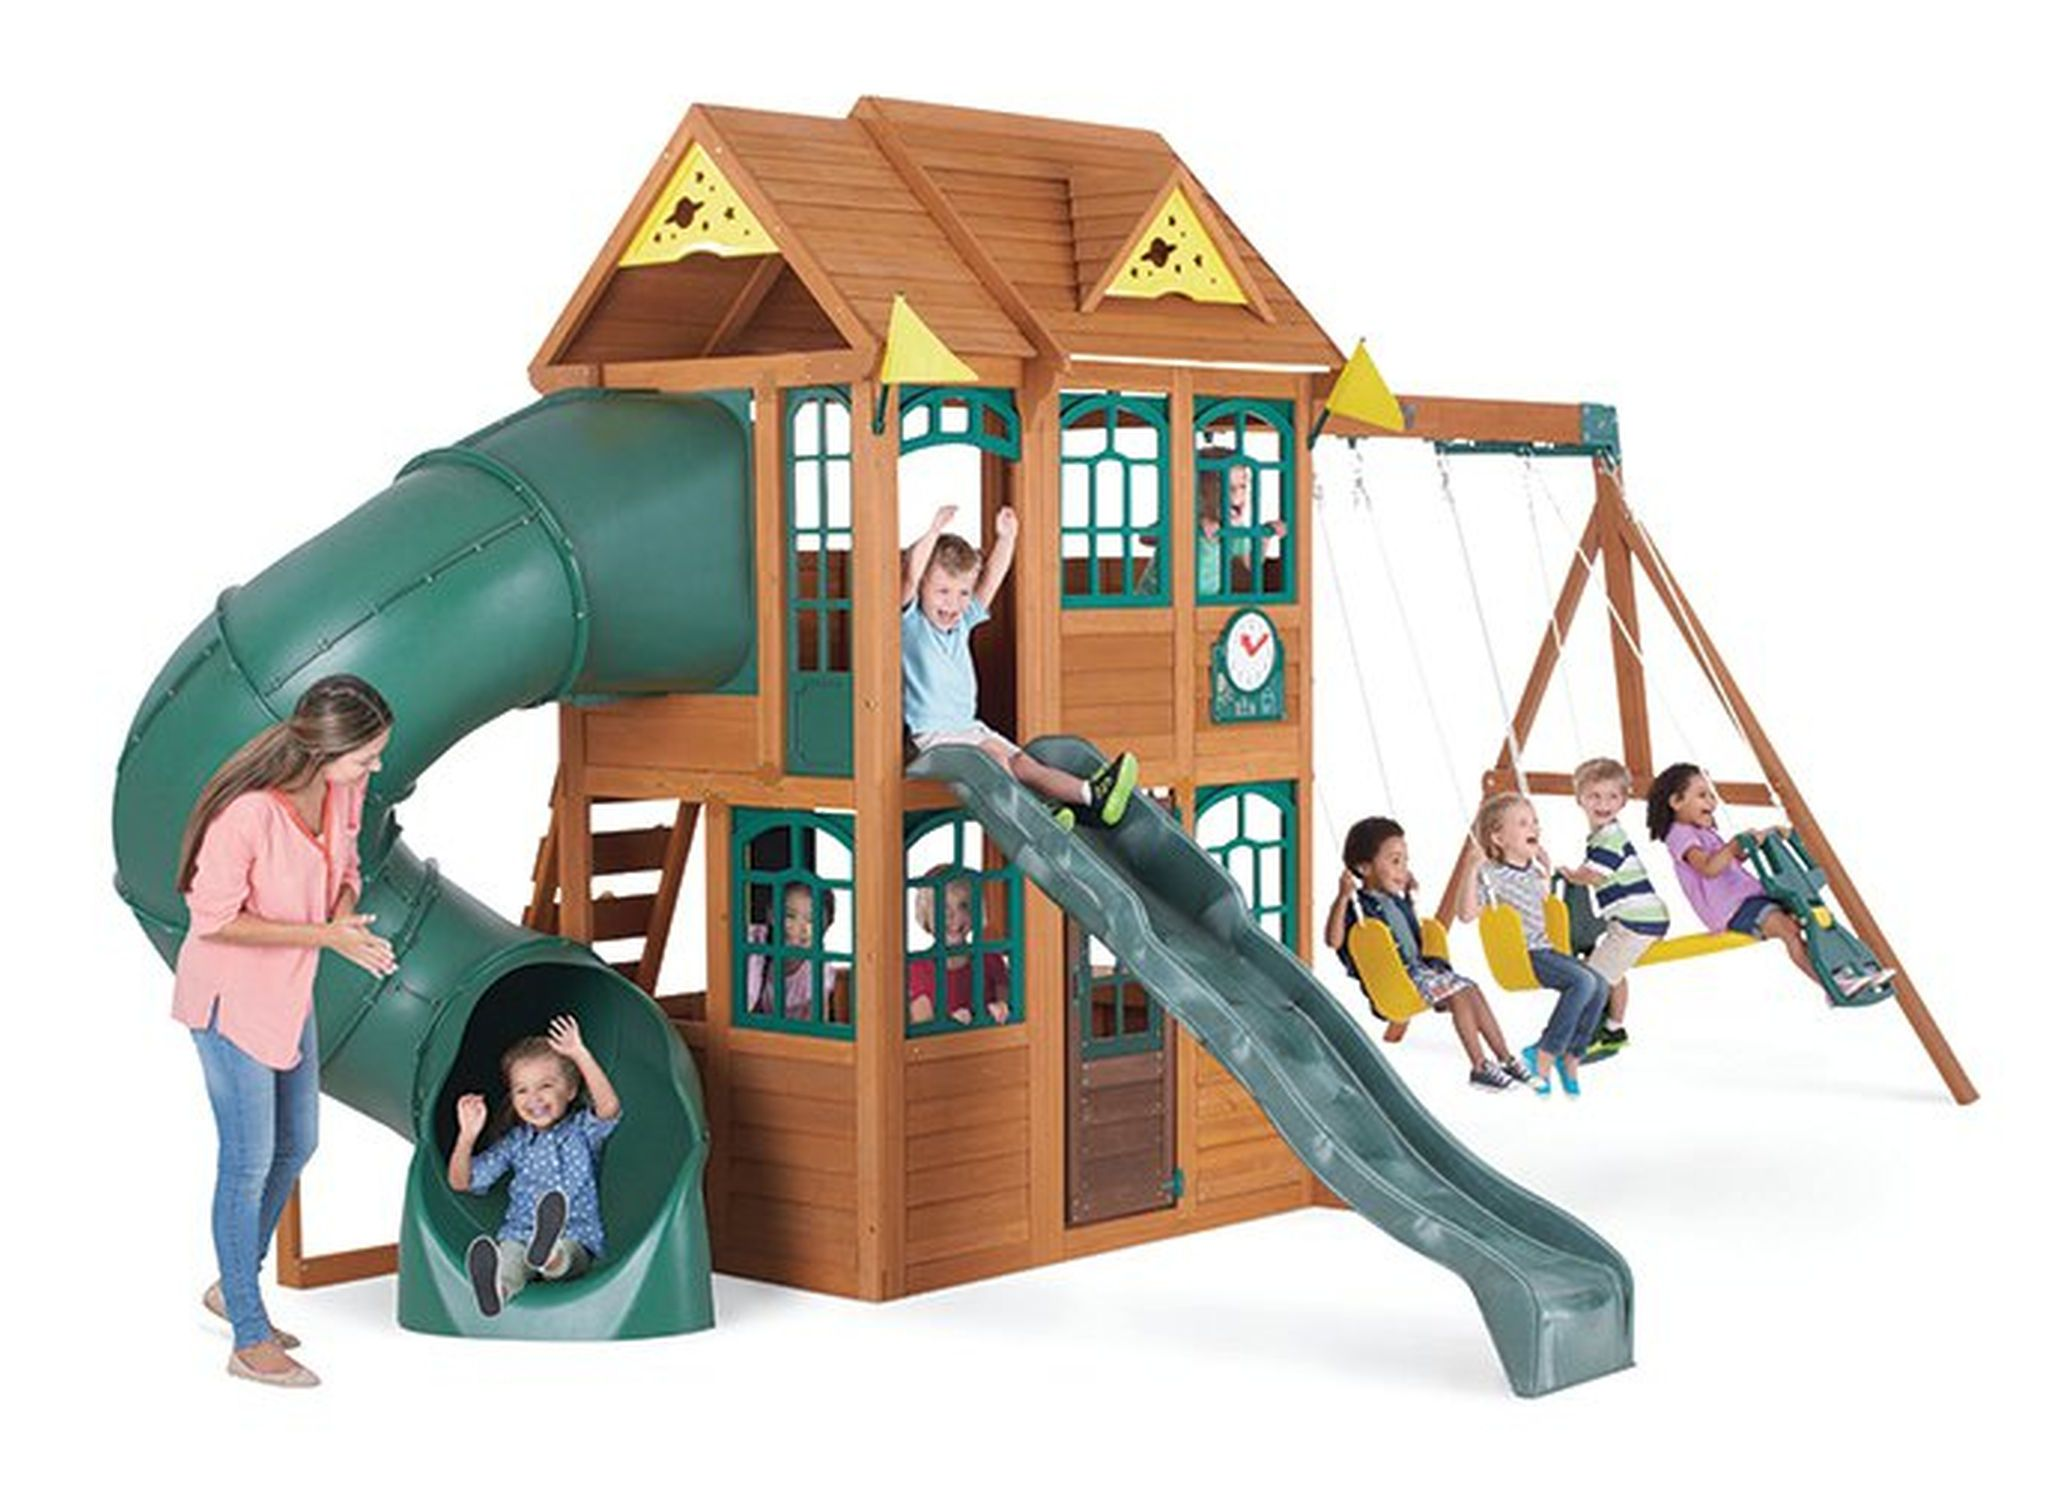 Medium Crop Of Big Backyard Playhouse